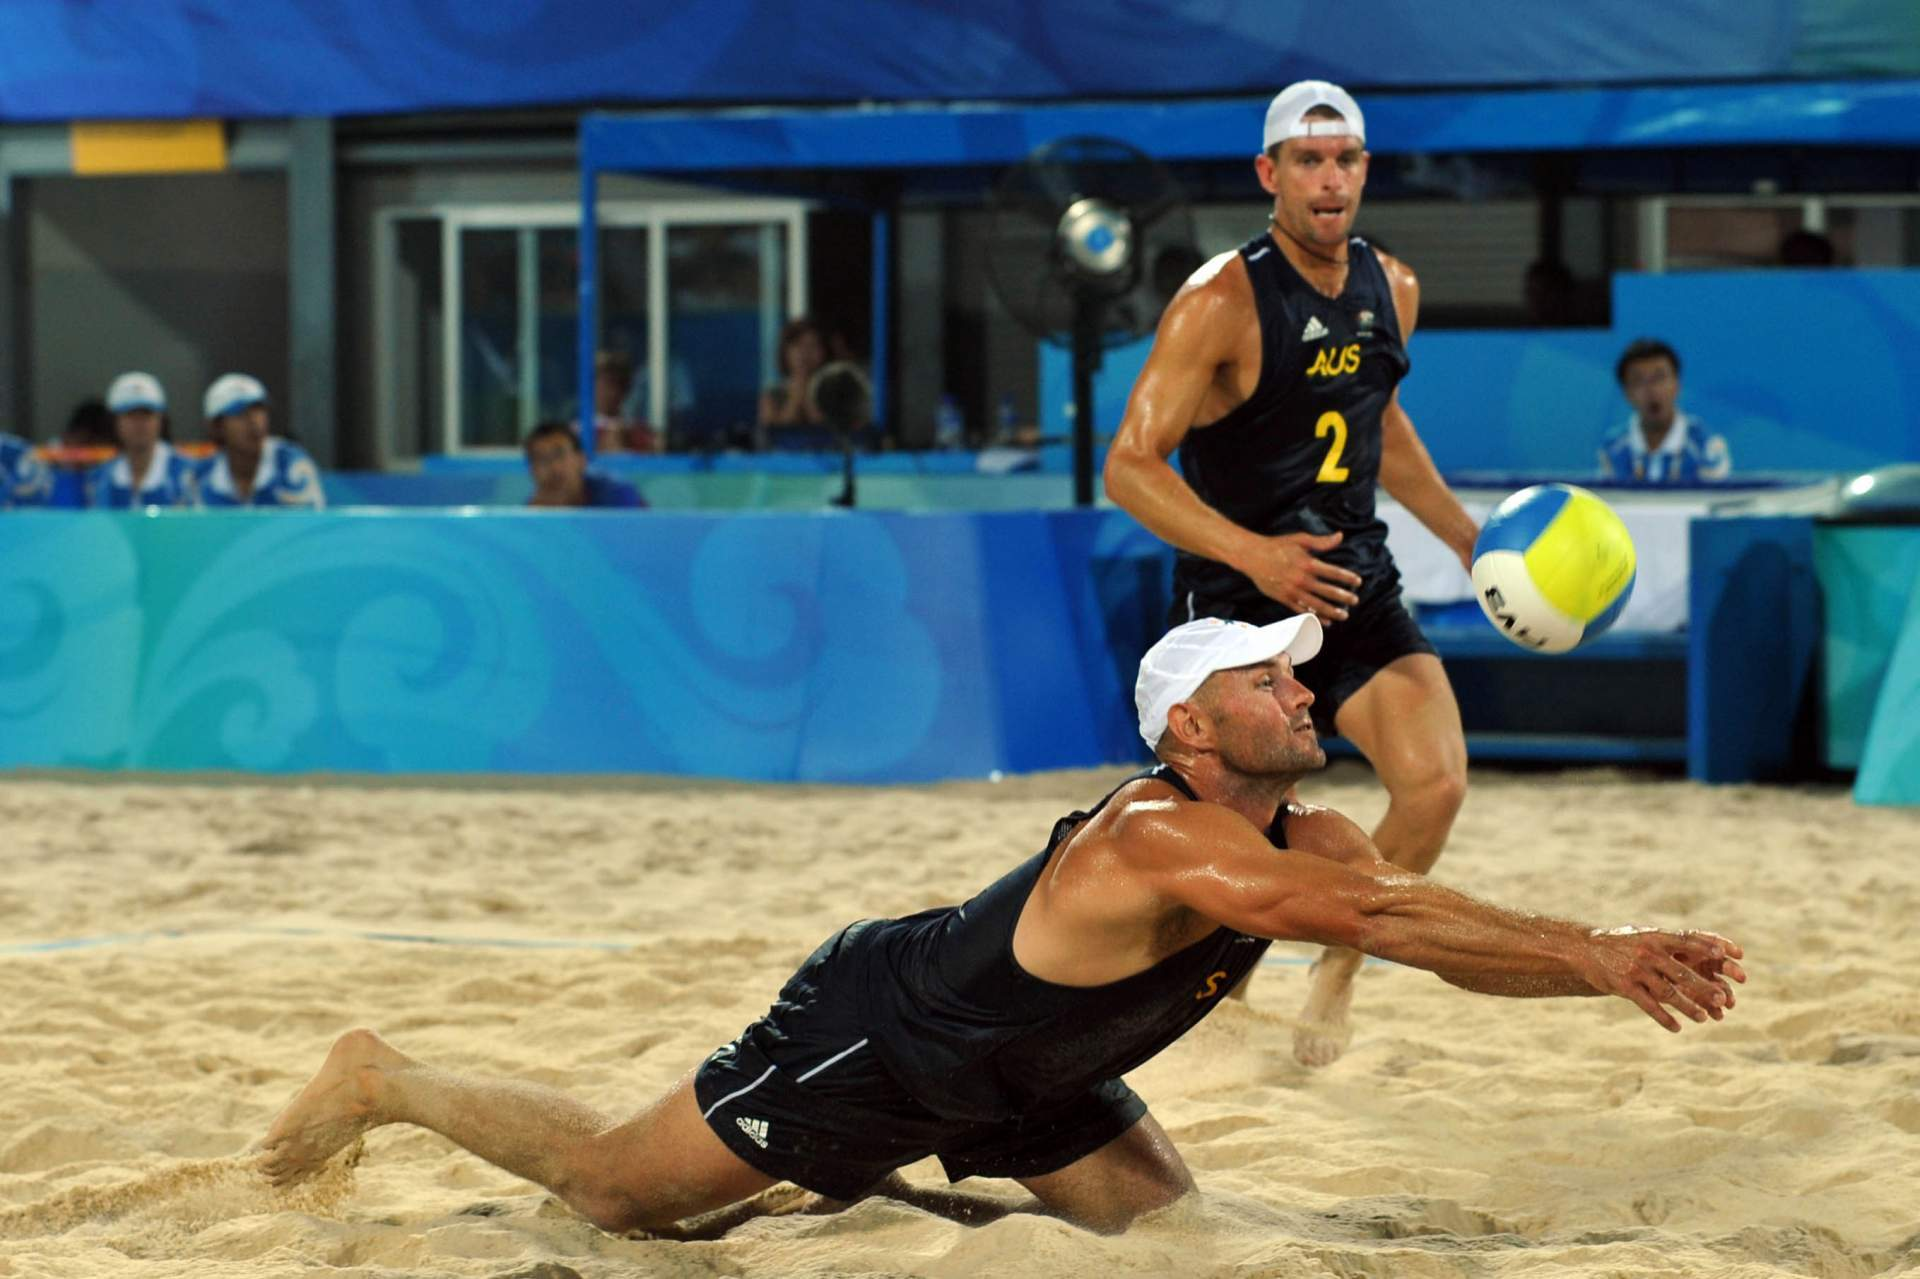 Australian Andrew Schasht retired after the Beijing 2008 Games (Photocredit: FIVB)